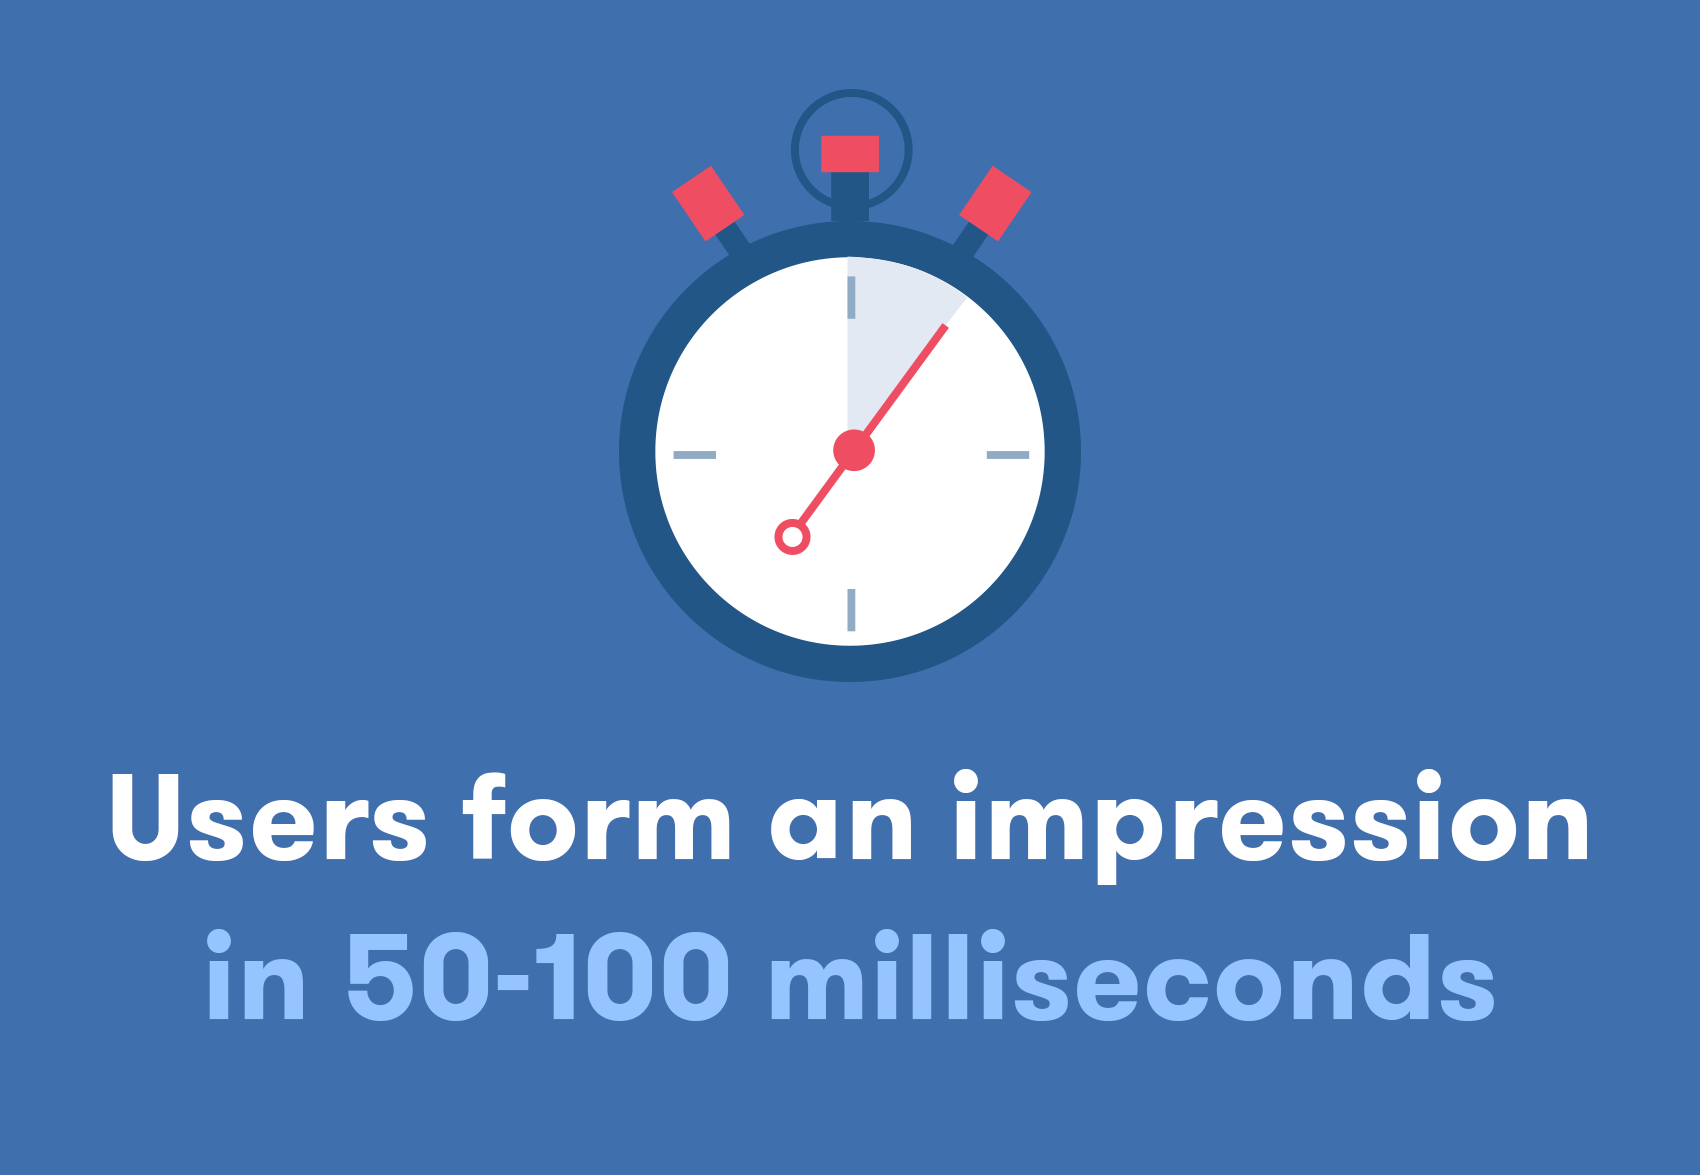 users_form_website_impressions_in_milliseconds